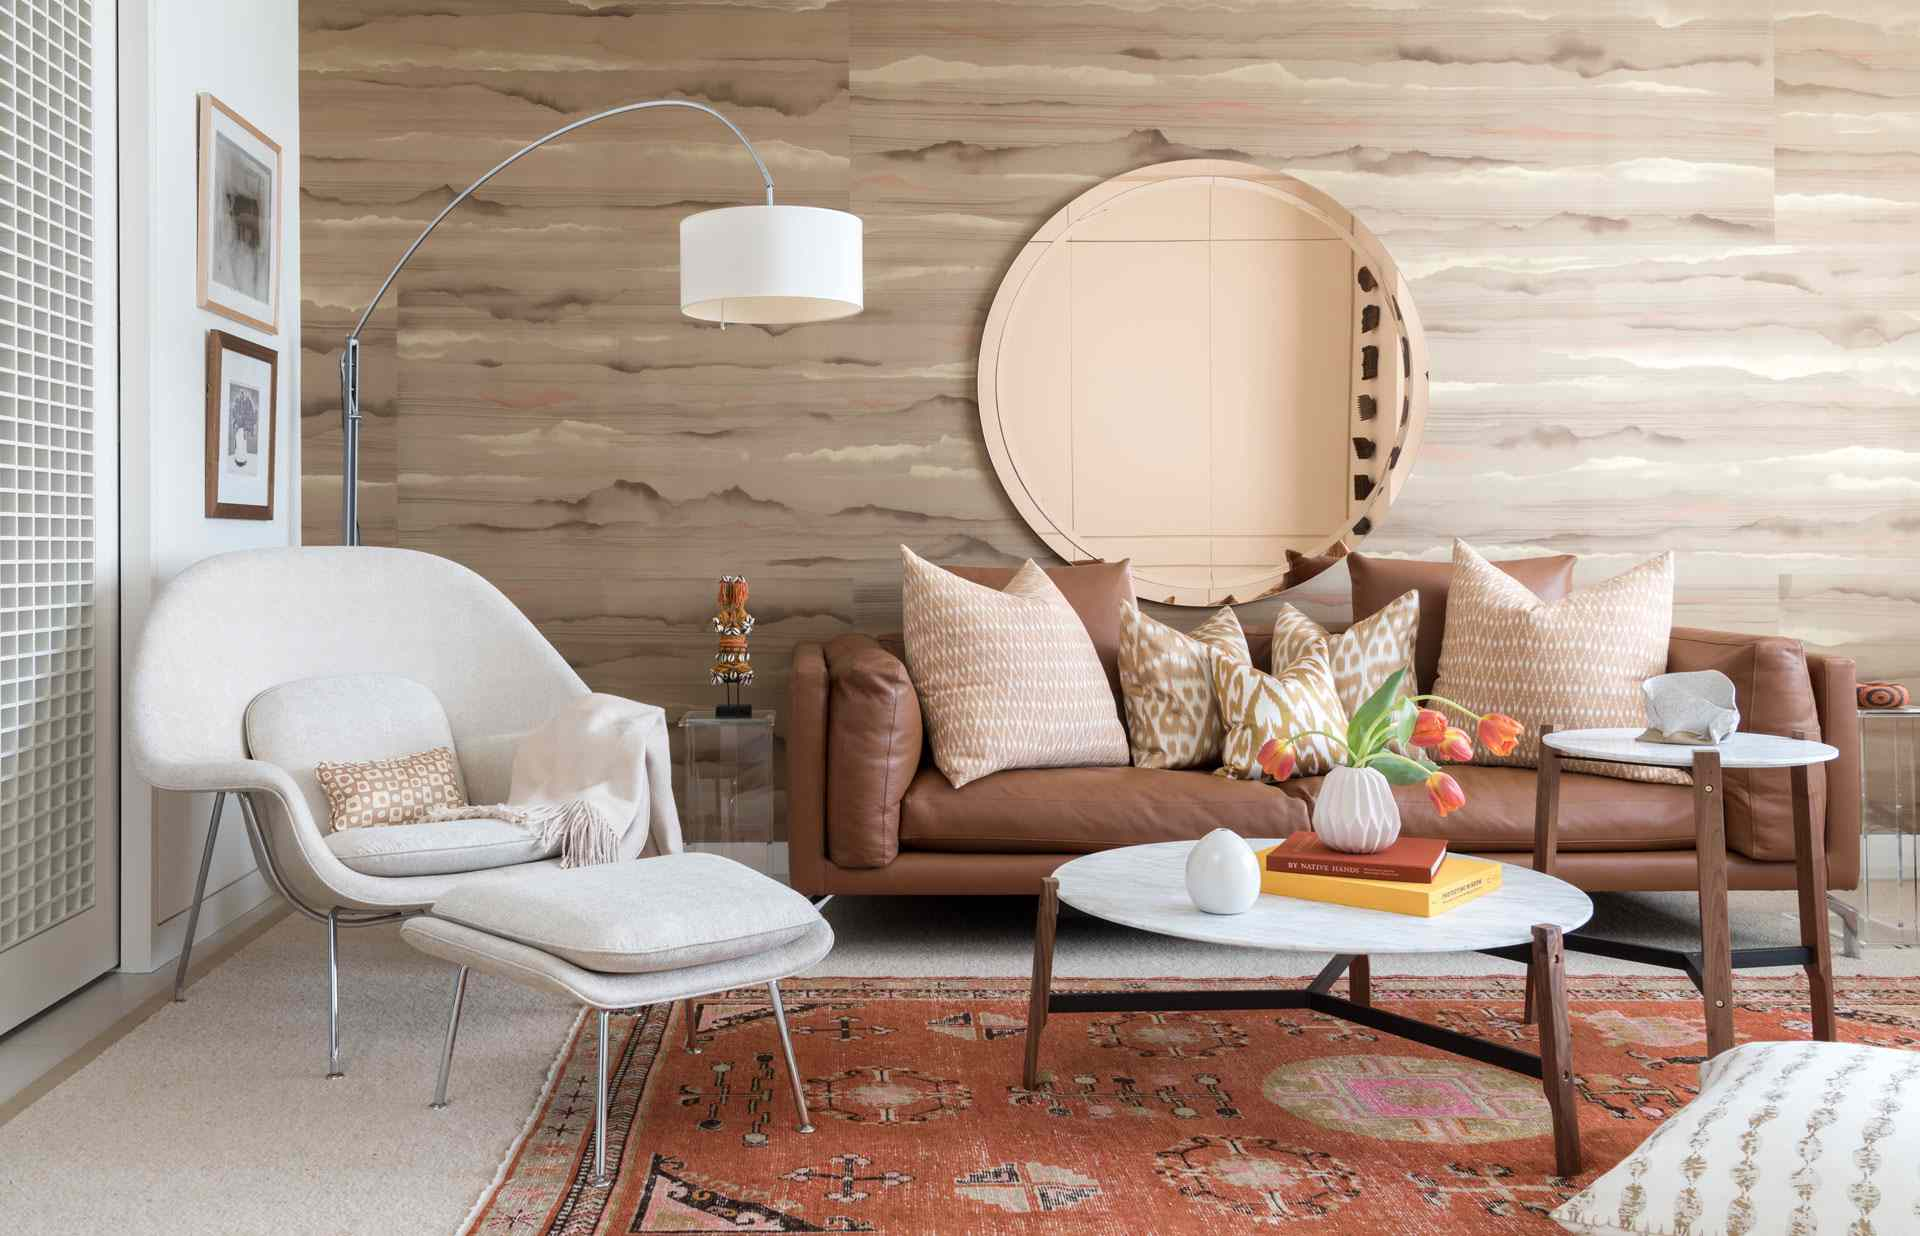 The designer floor lamp: everything you need to know